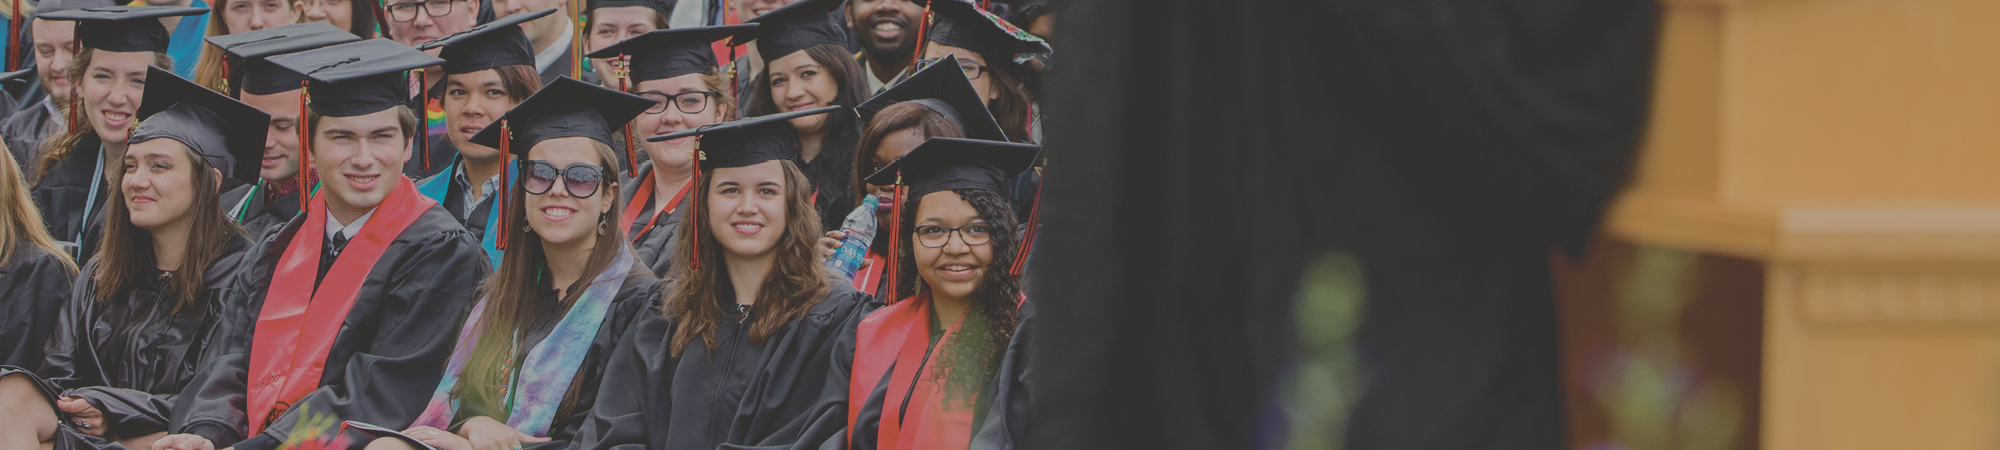 Graduates at Grinnell College Commencement ceremony